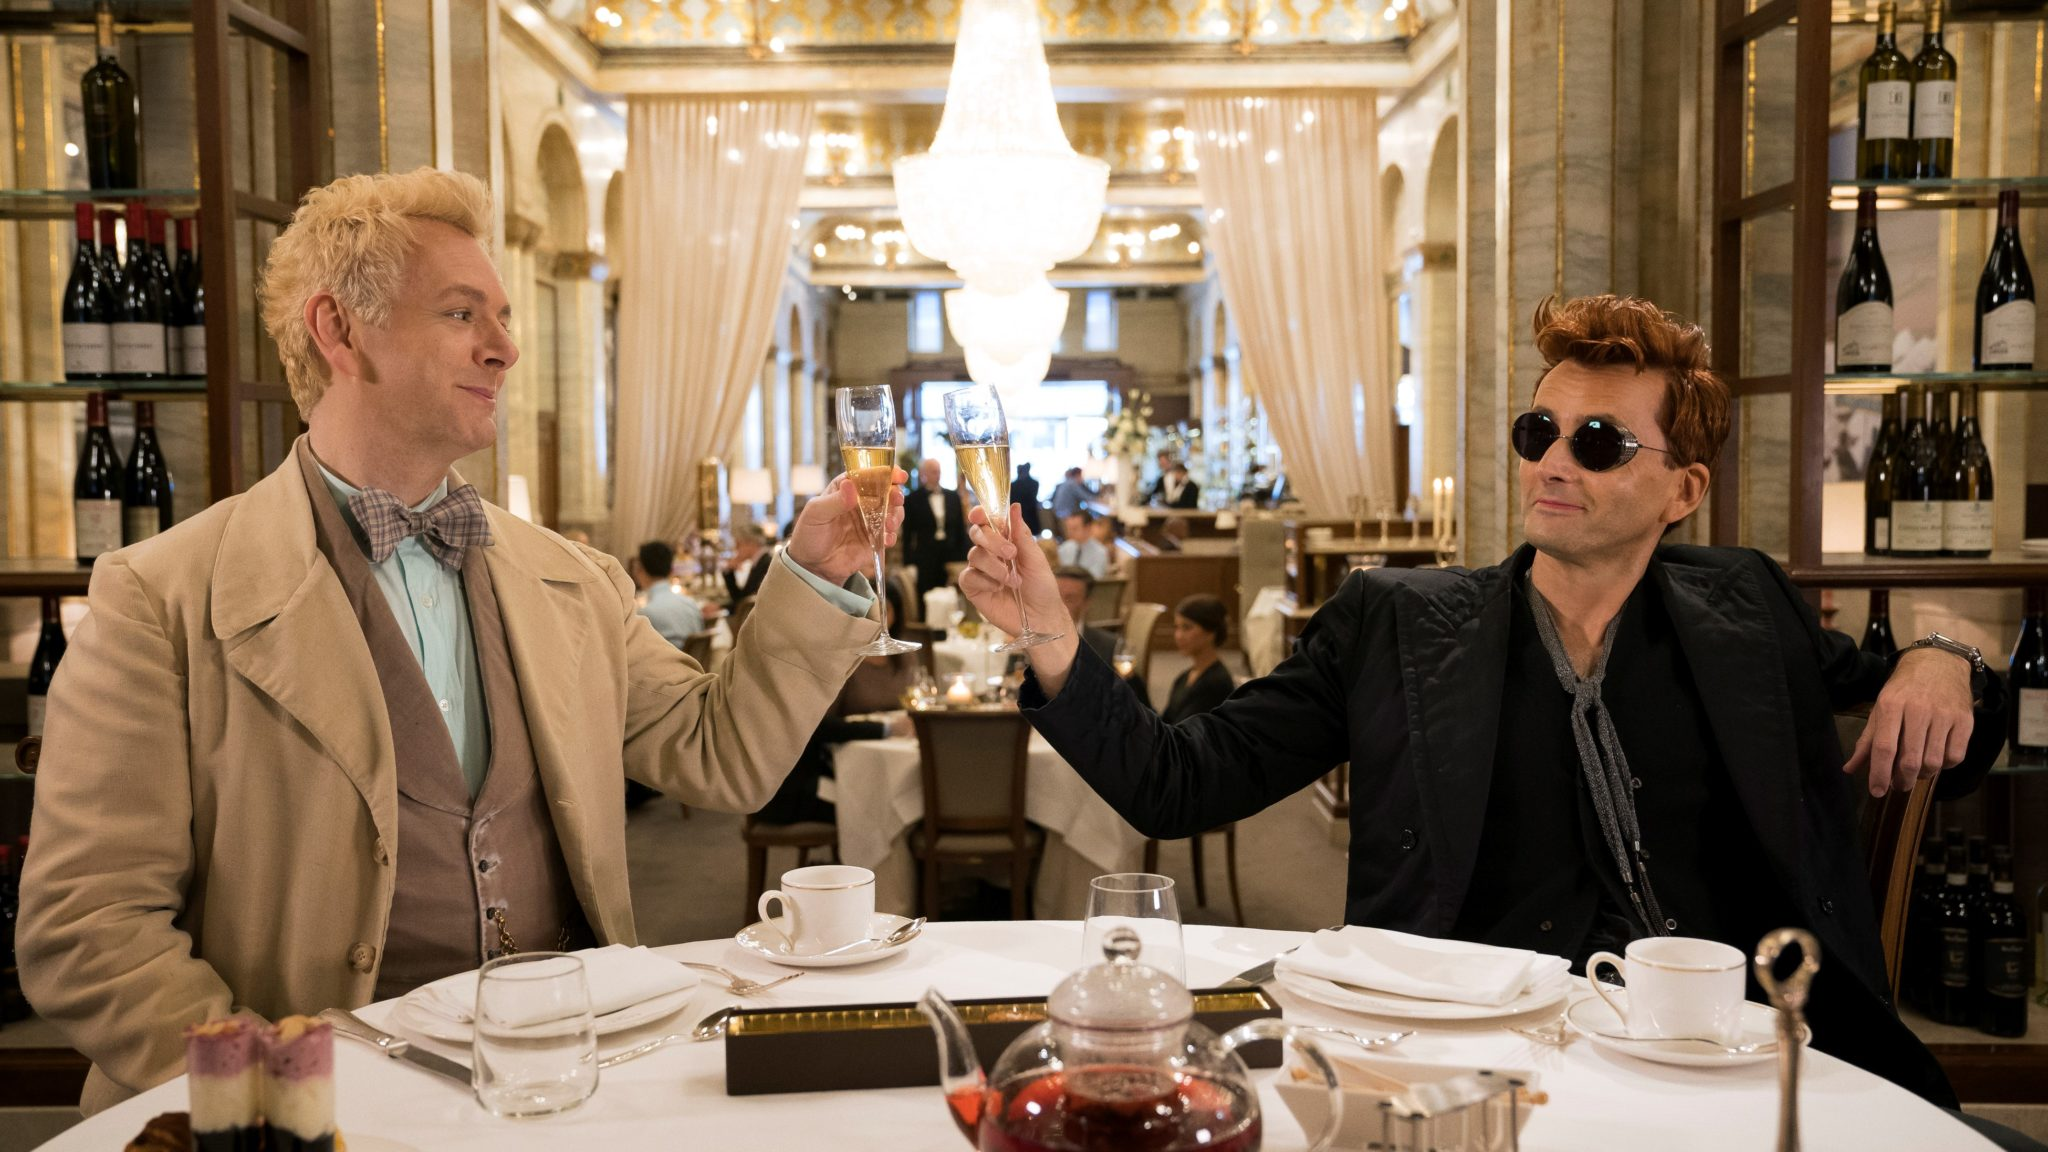 in the middle of a crowded restaurant, Aziraphale, dressed in lighter colors, and Crowley, dressed in mostly black, have a toast on Good Omens